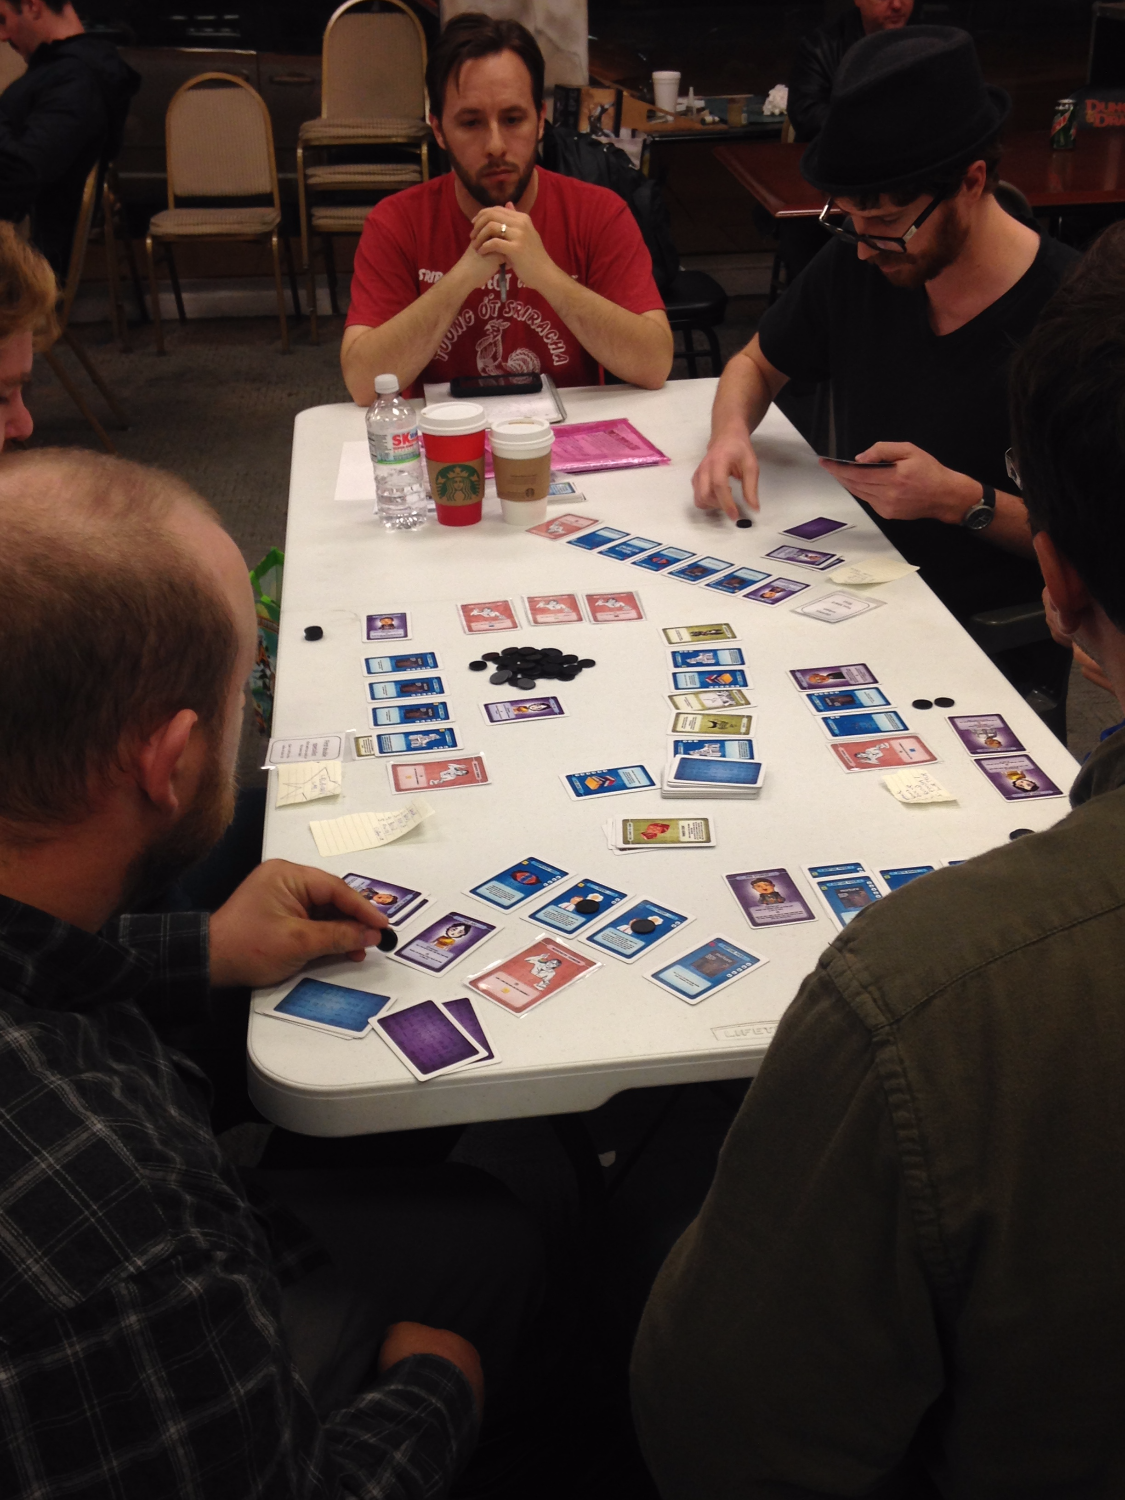 Playtesting in LA